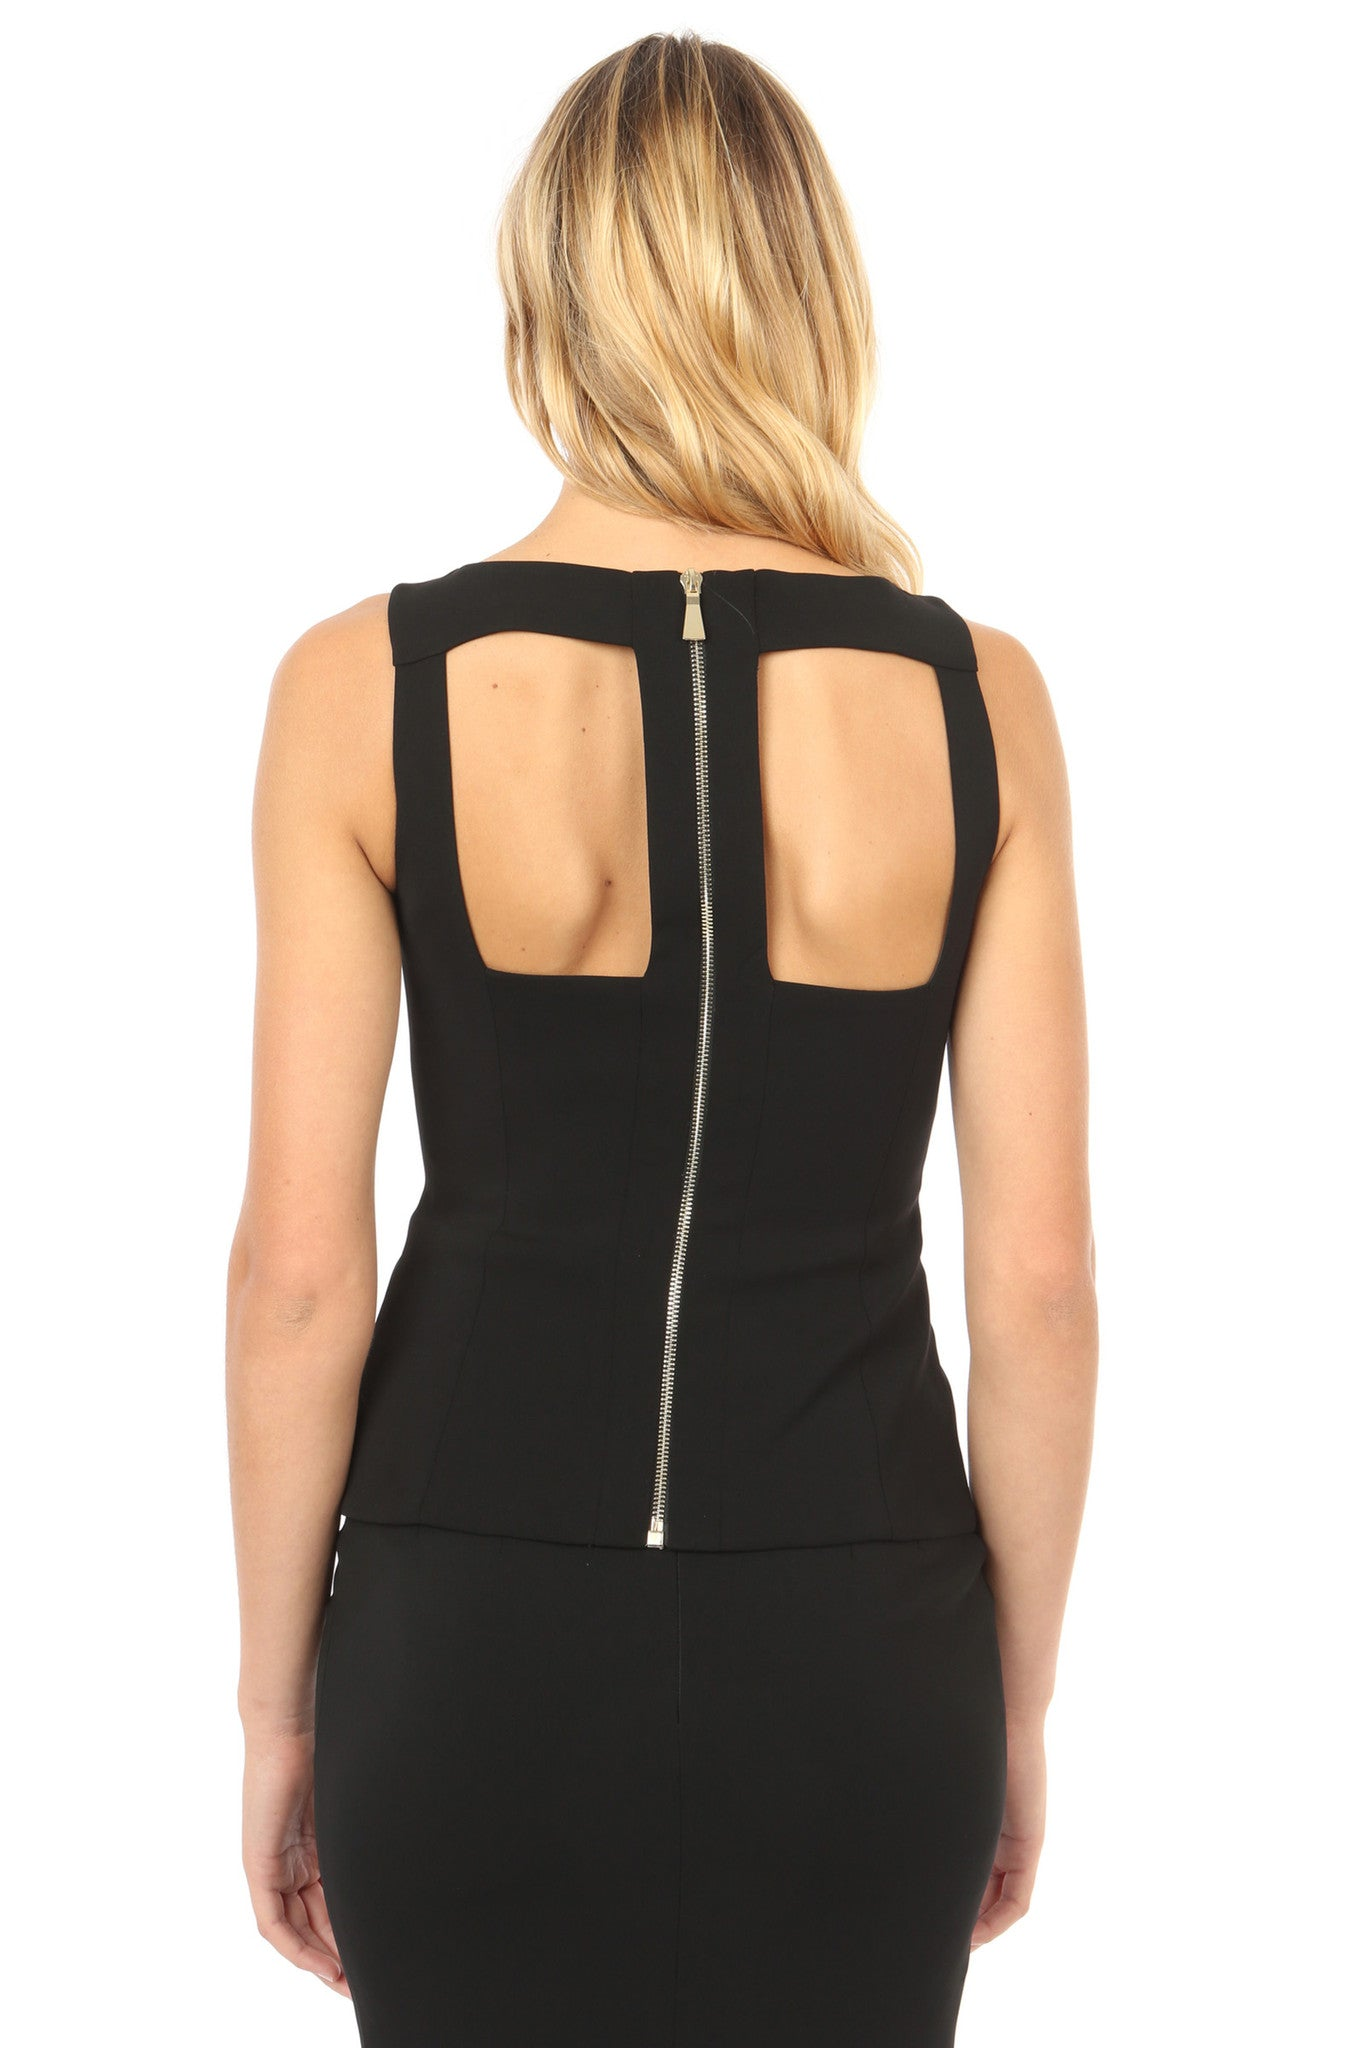 Jay Godfrey Black Cut-Out Top - Back View